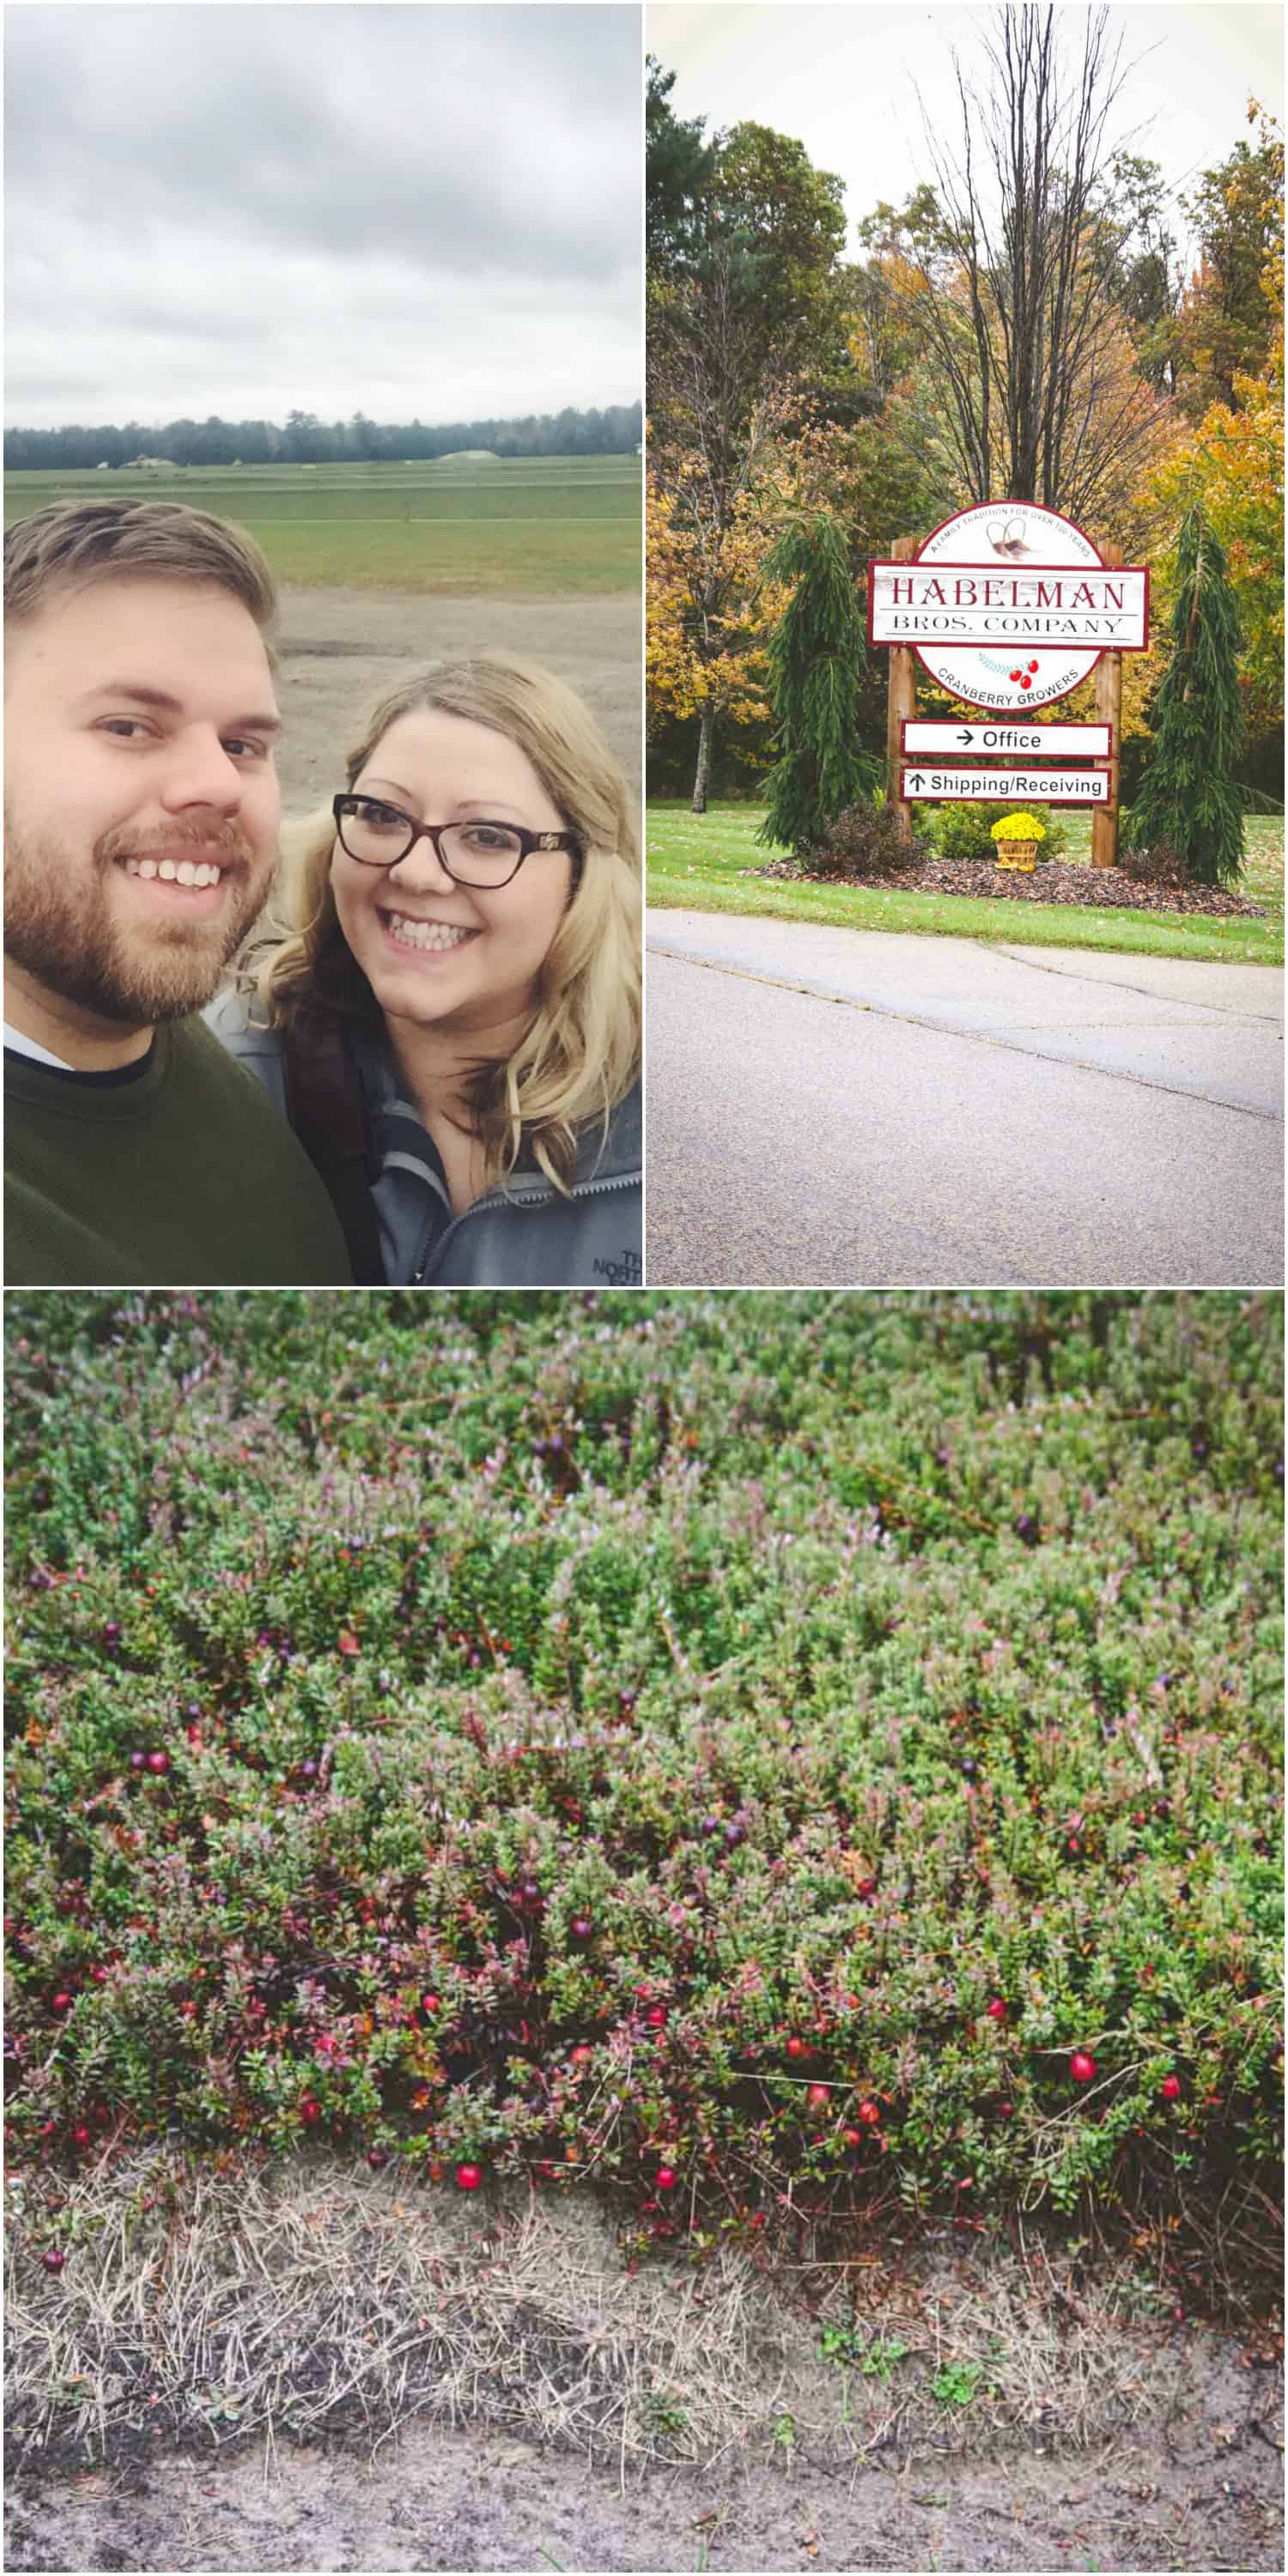 Our trip to a Wisconsin cranberry bog